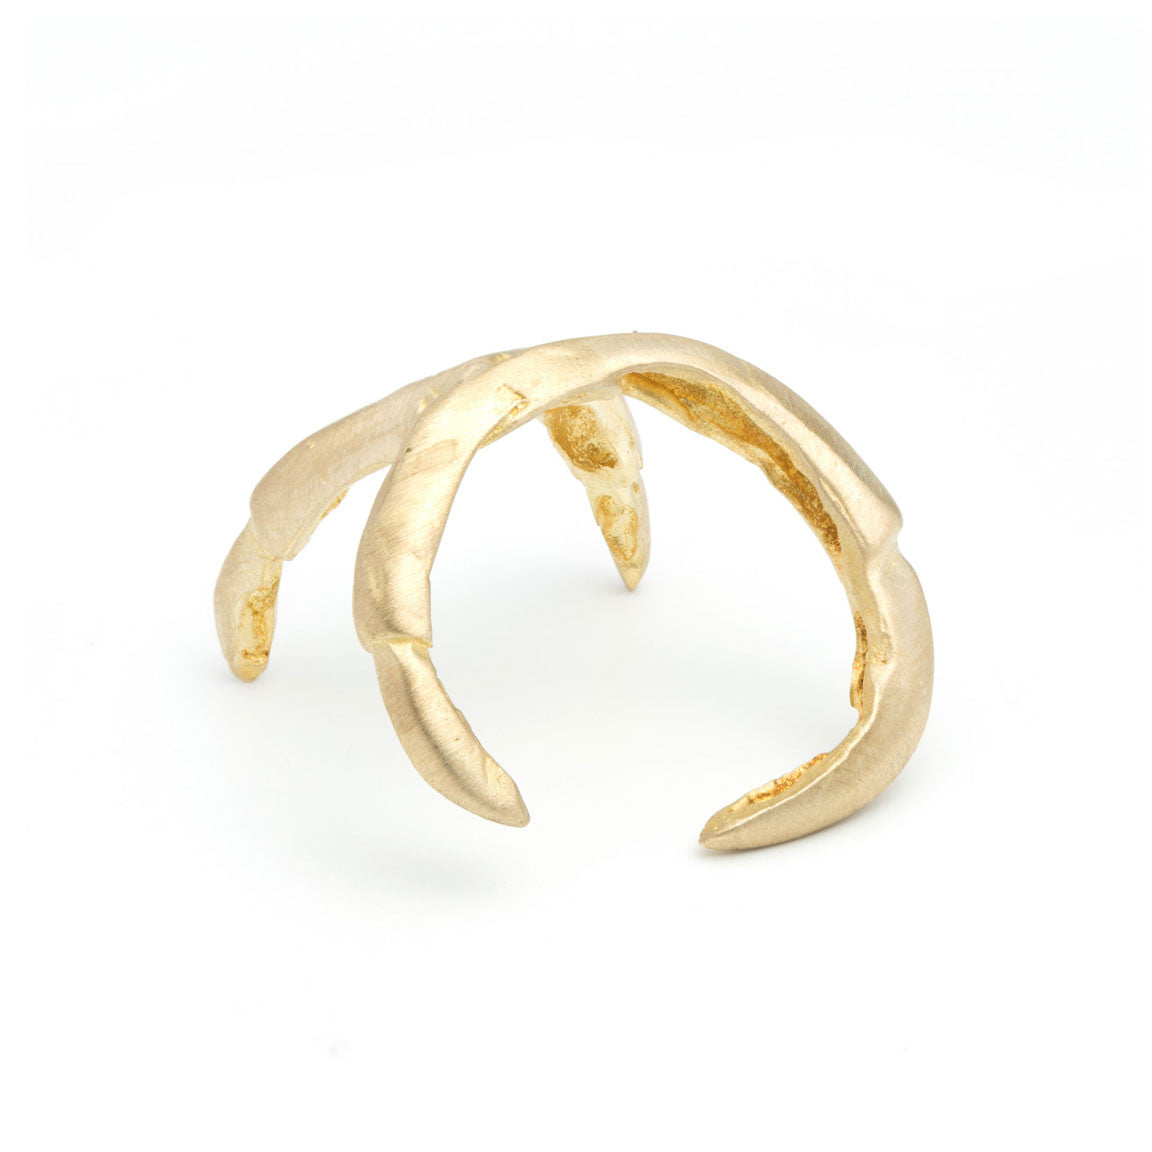 SMALL CLAW RING